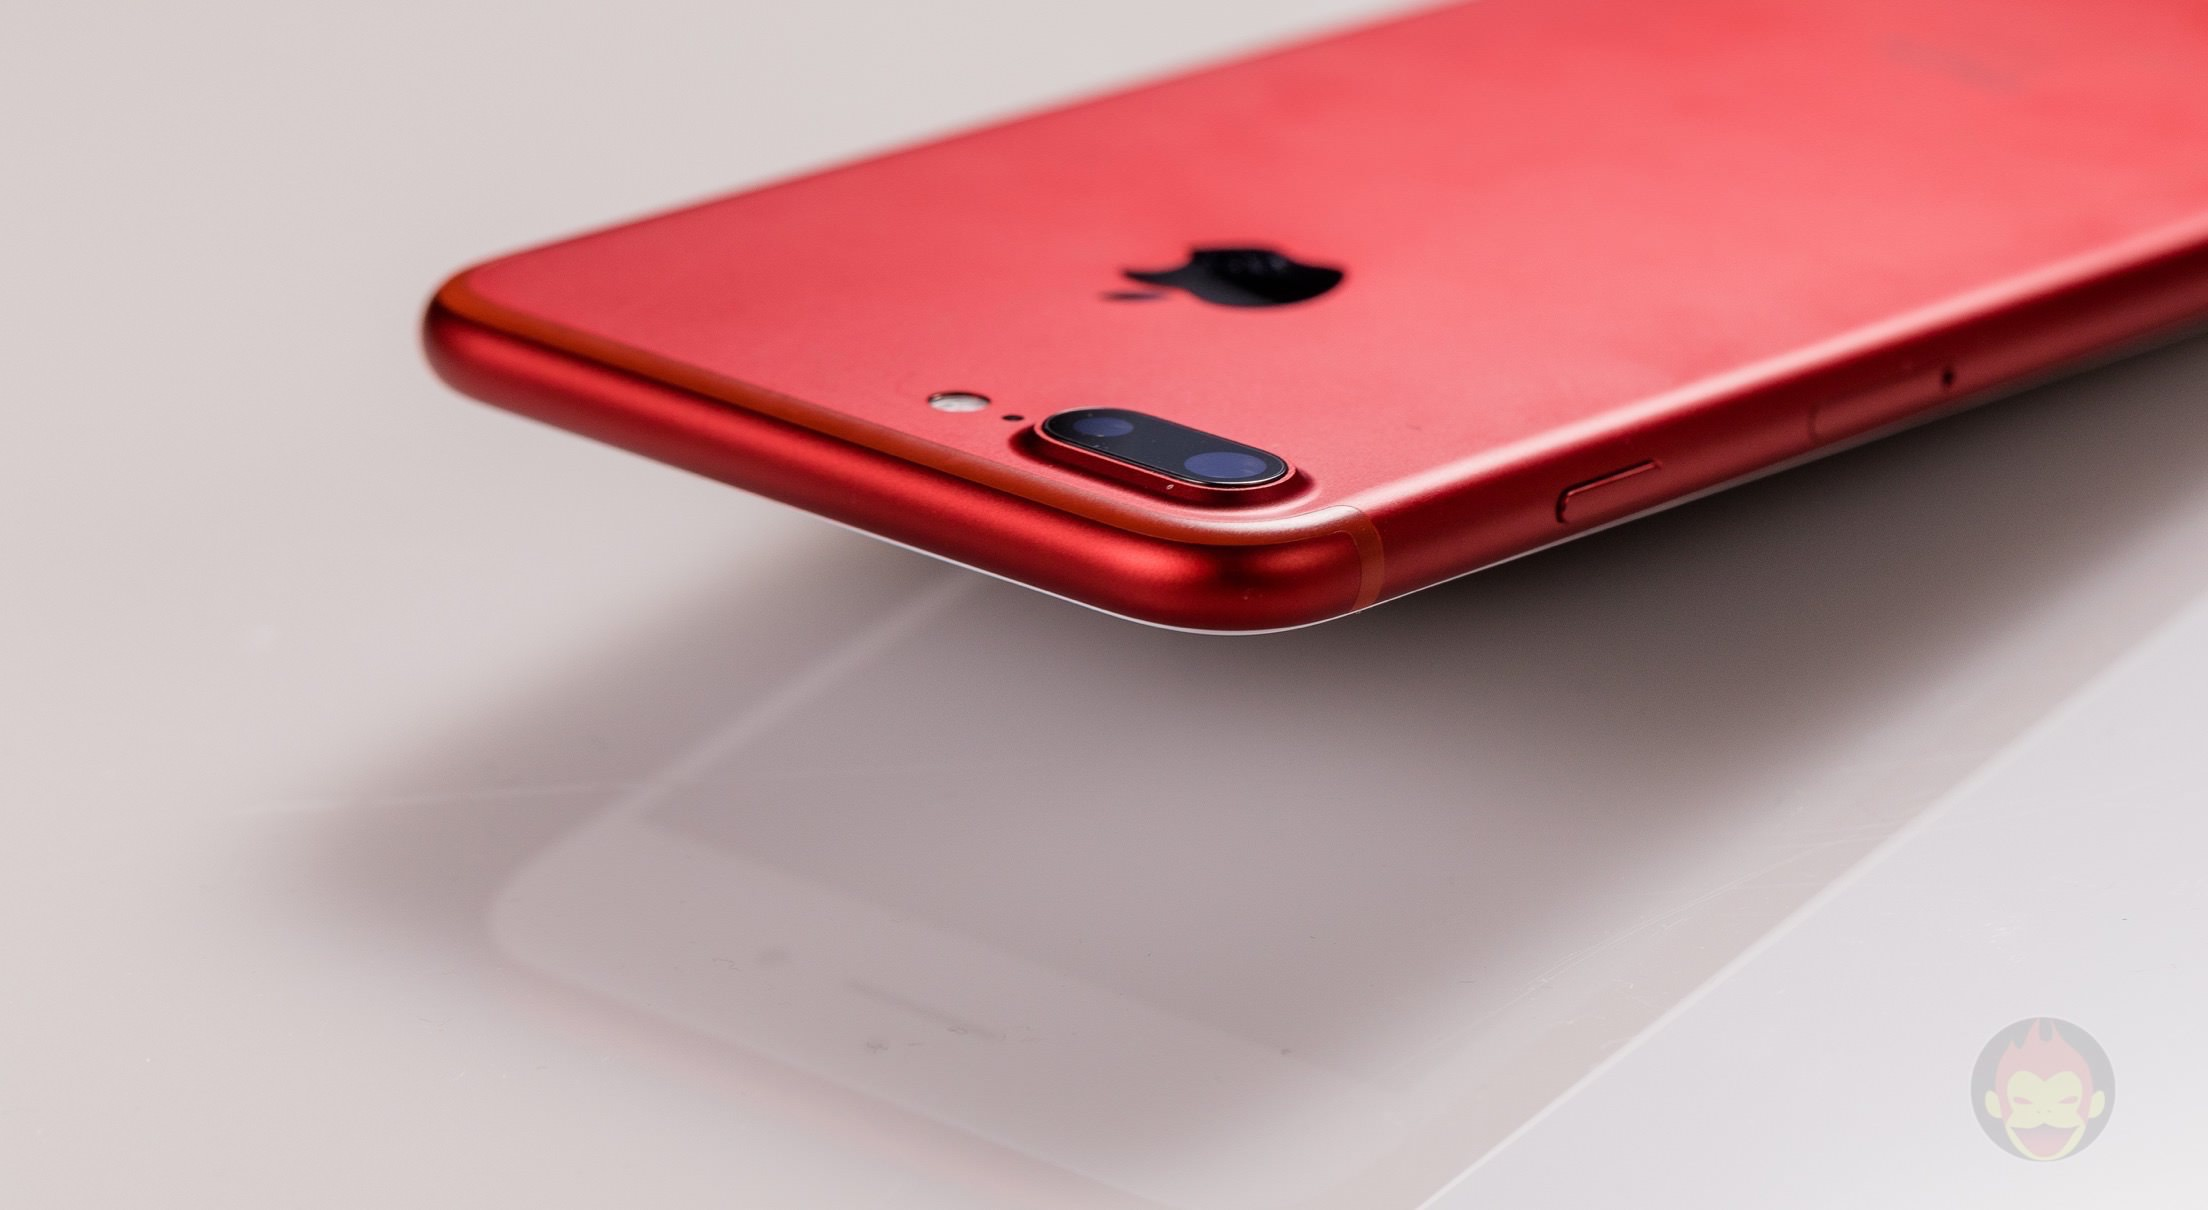 iPhone-7-Product-Red-Special-Edition-19.jpg